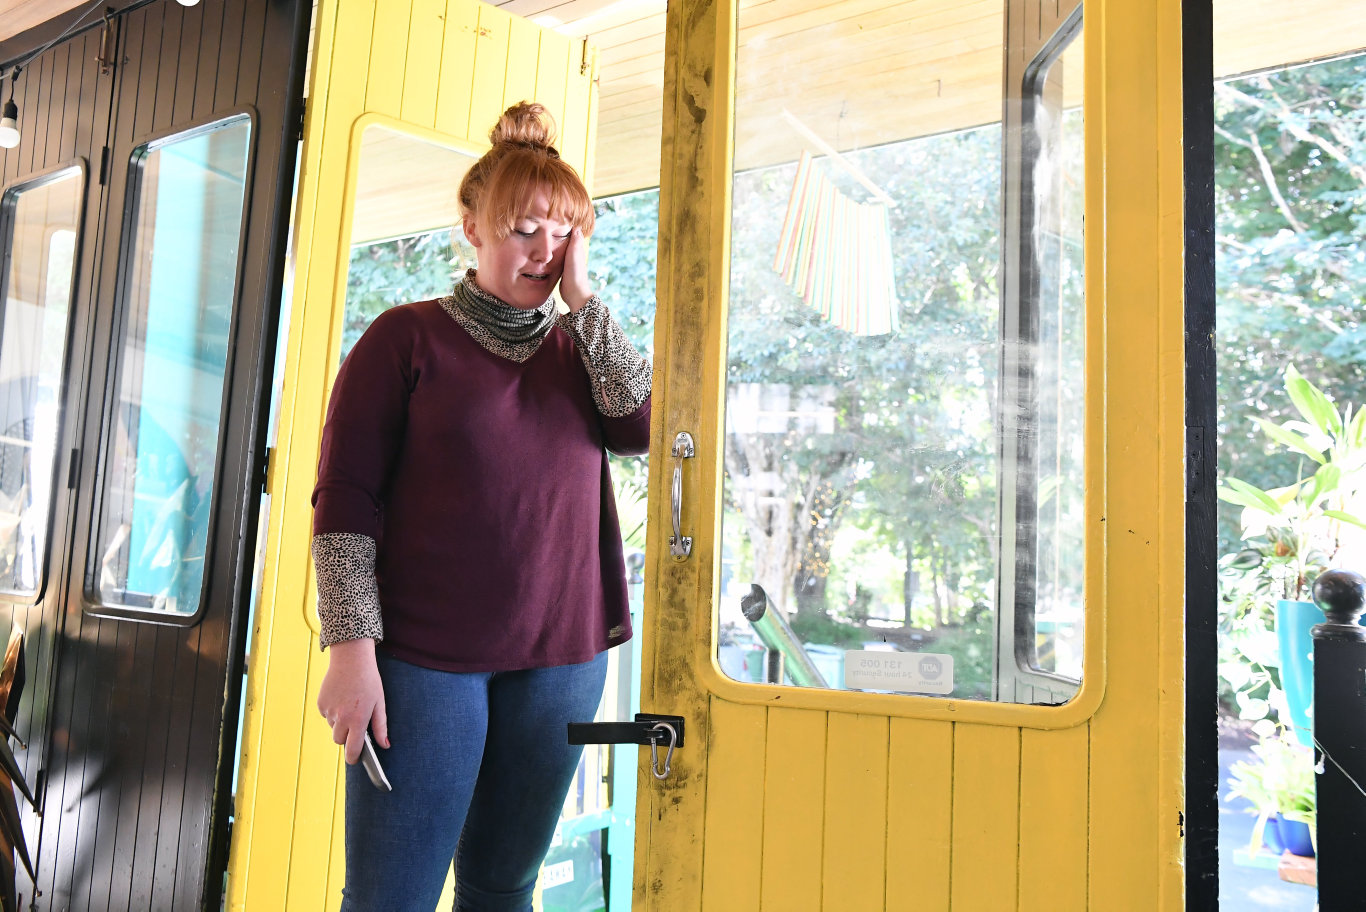 Katie Johnston said there was tears as she realised the impact of a break-in at her restaurant.